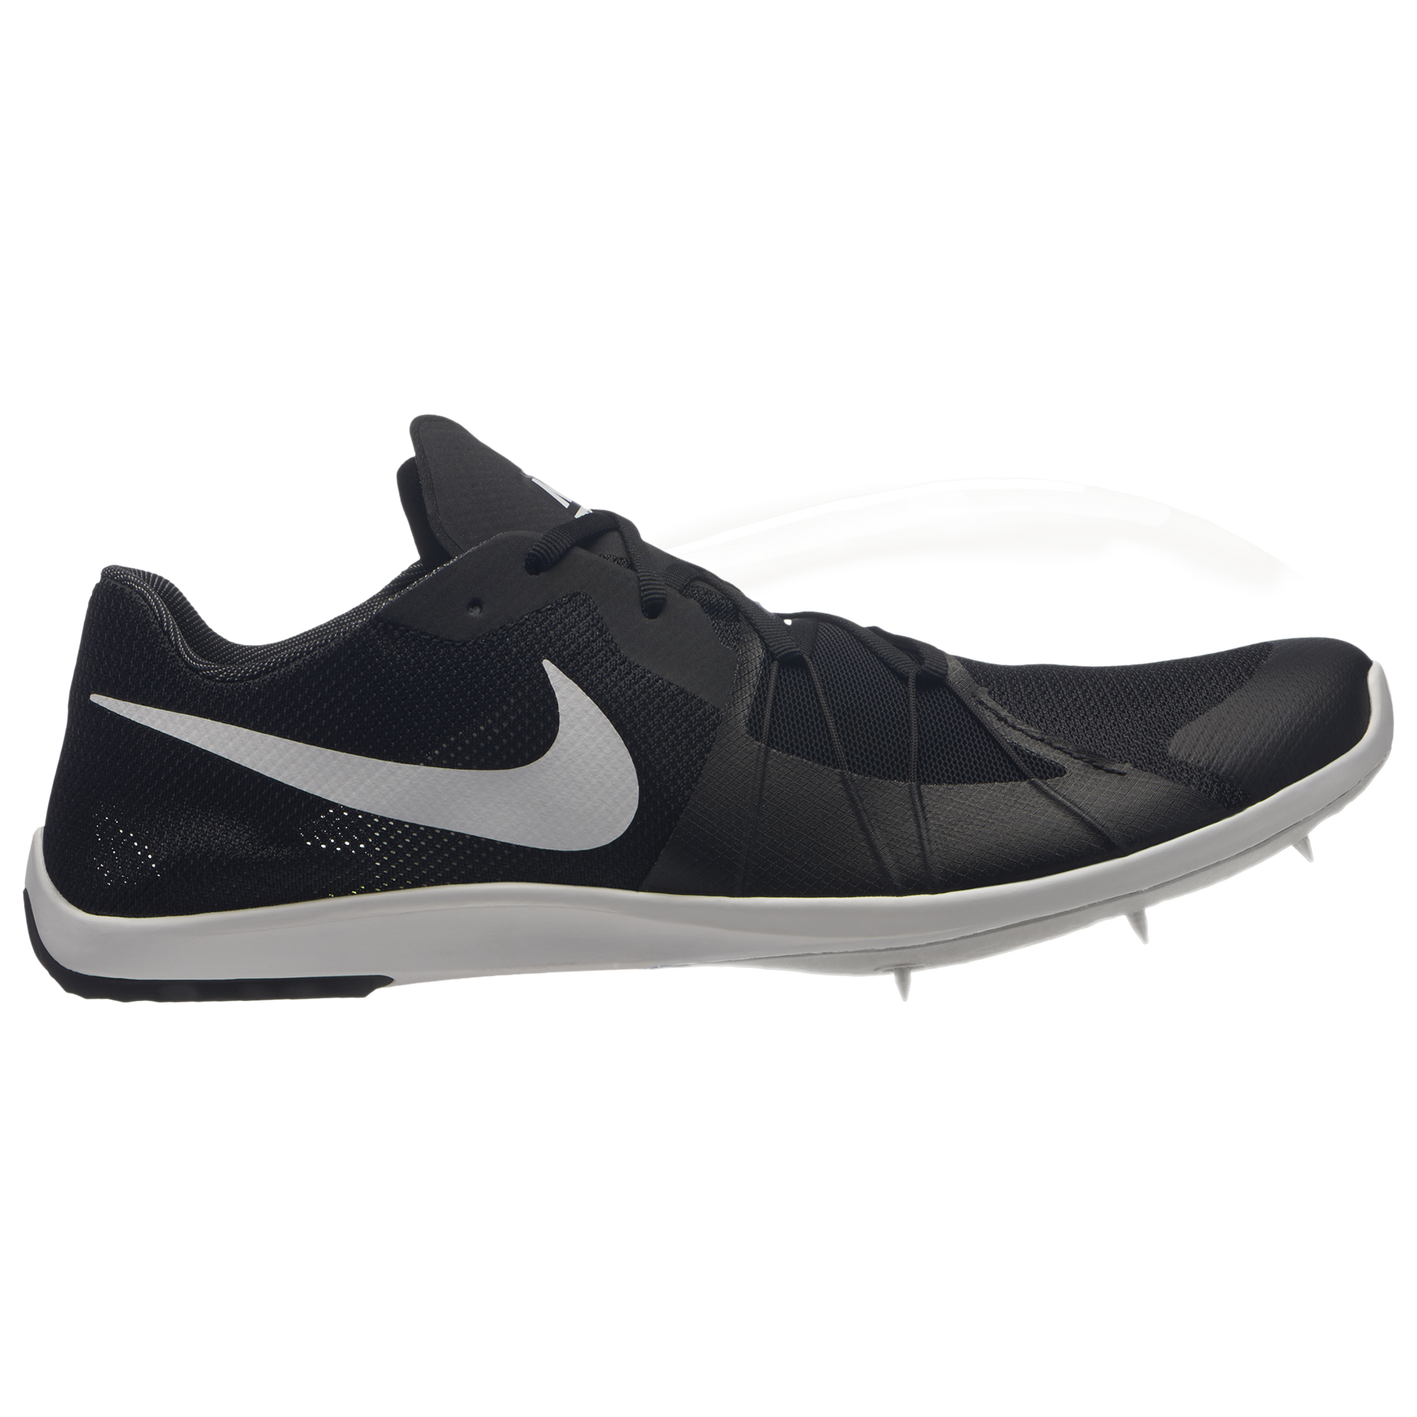 1c19c955f72 Nike Zoom Forever XC 5 - Men s - Track   Field - Shoes - Black ...